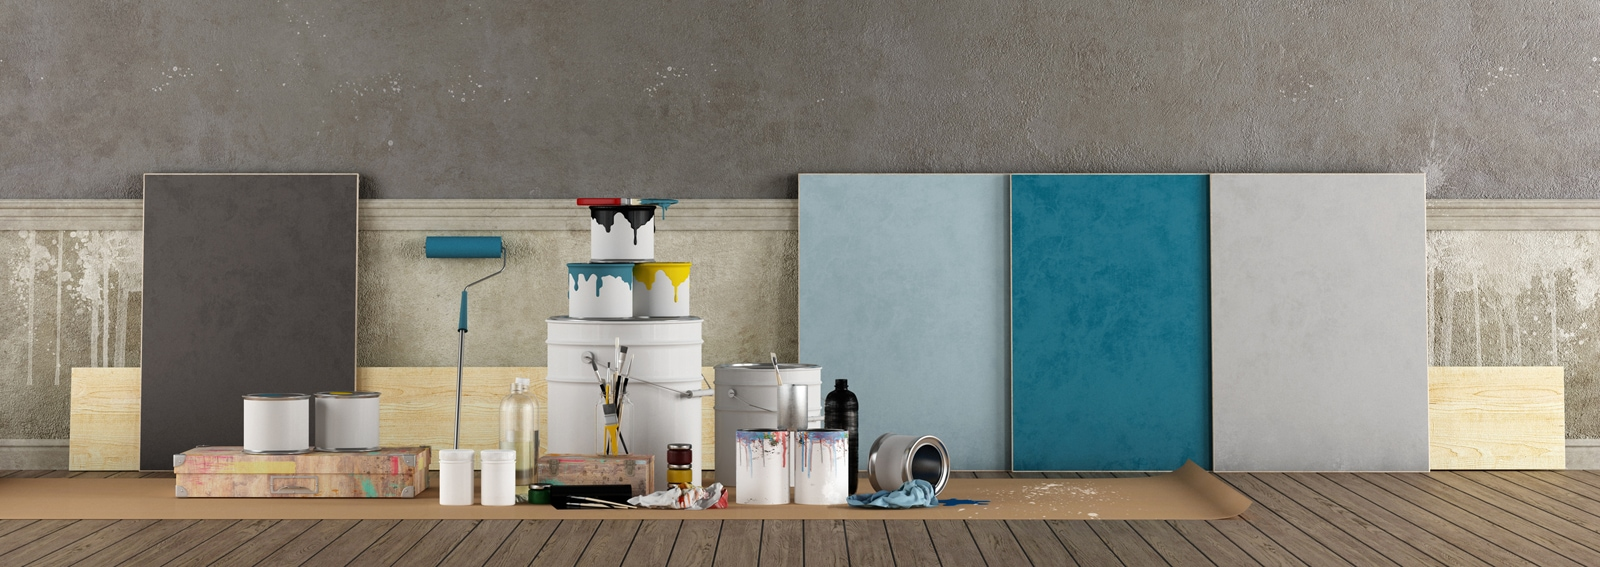 Select color swatch to paint old wall